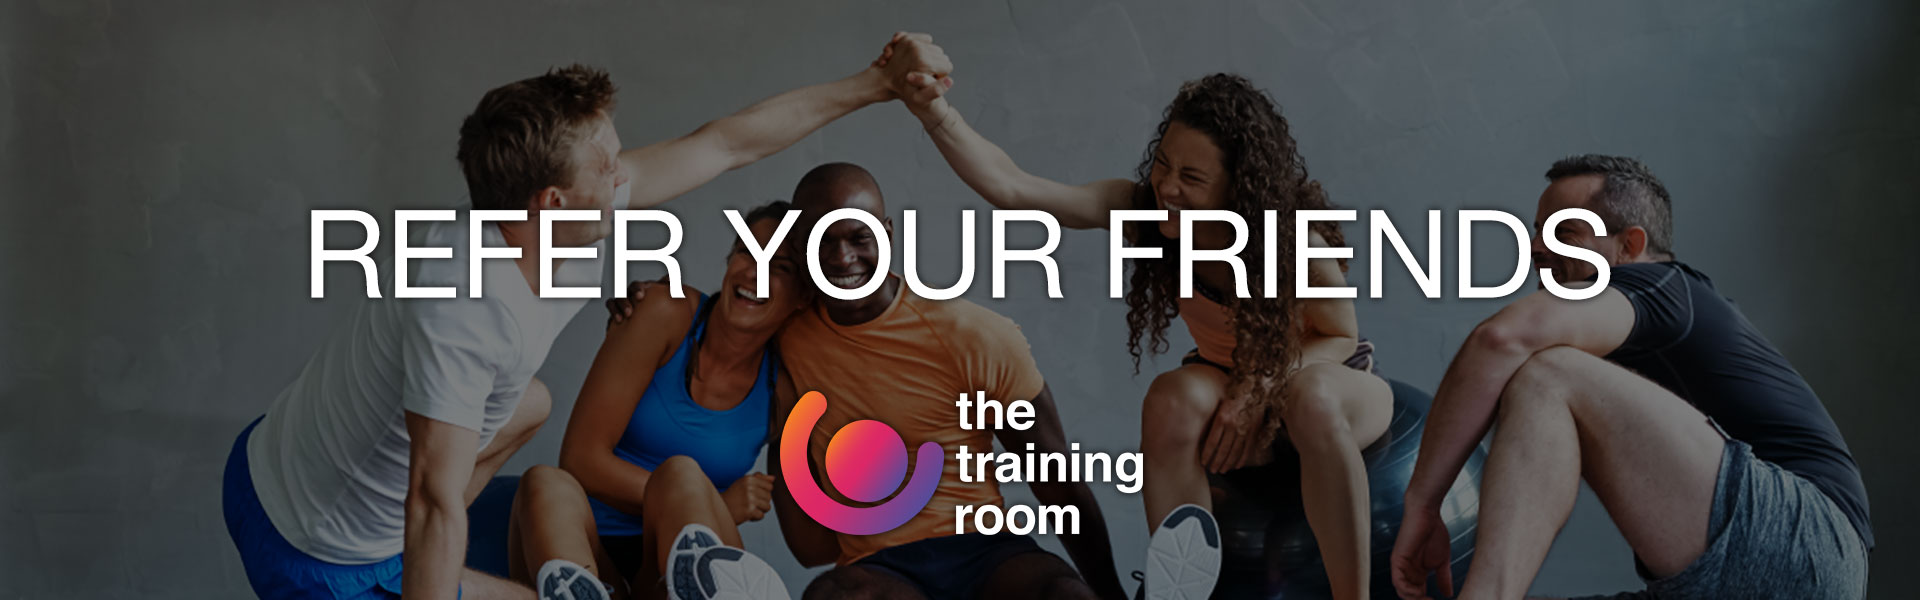 The Training Room Banner